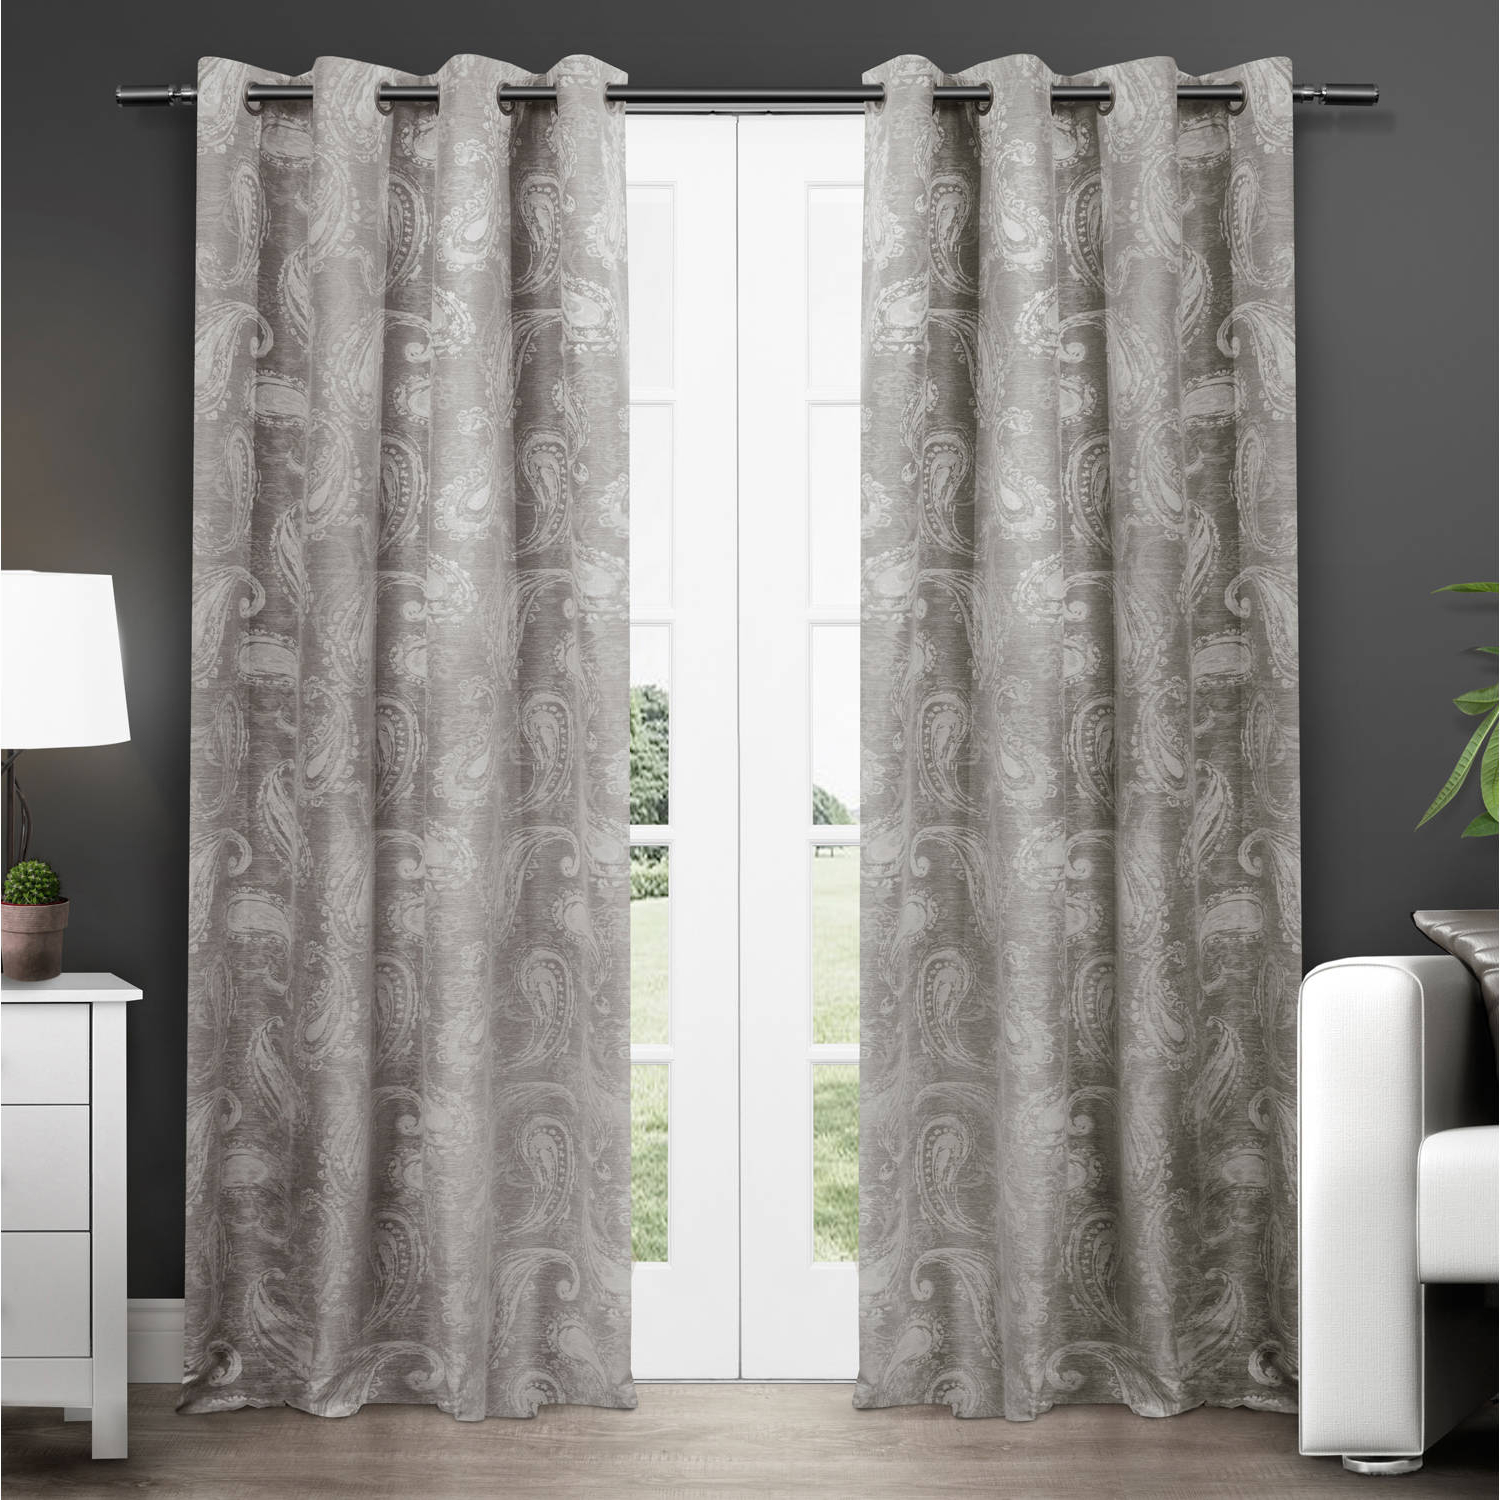 Exclusive Home Bangalore Paisley Thermal Window Curtain Panel Pair With Grommet Top For Favorite Grommet Top Thermal Insulated Blackout Curtain Panel Pairs (View 16 of 20)